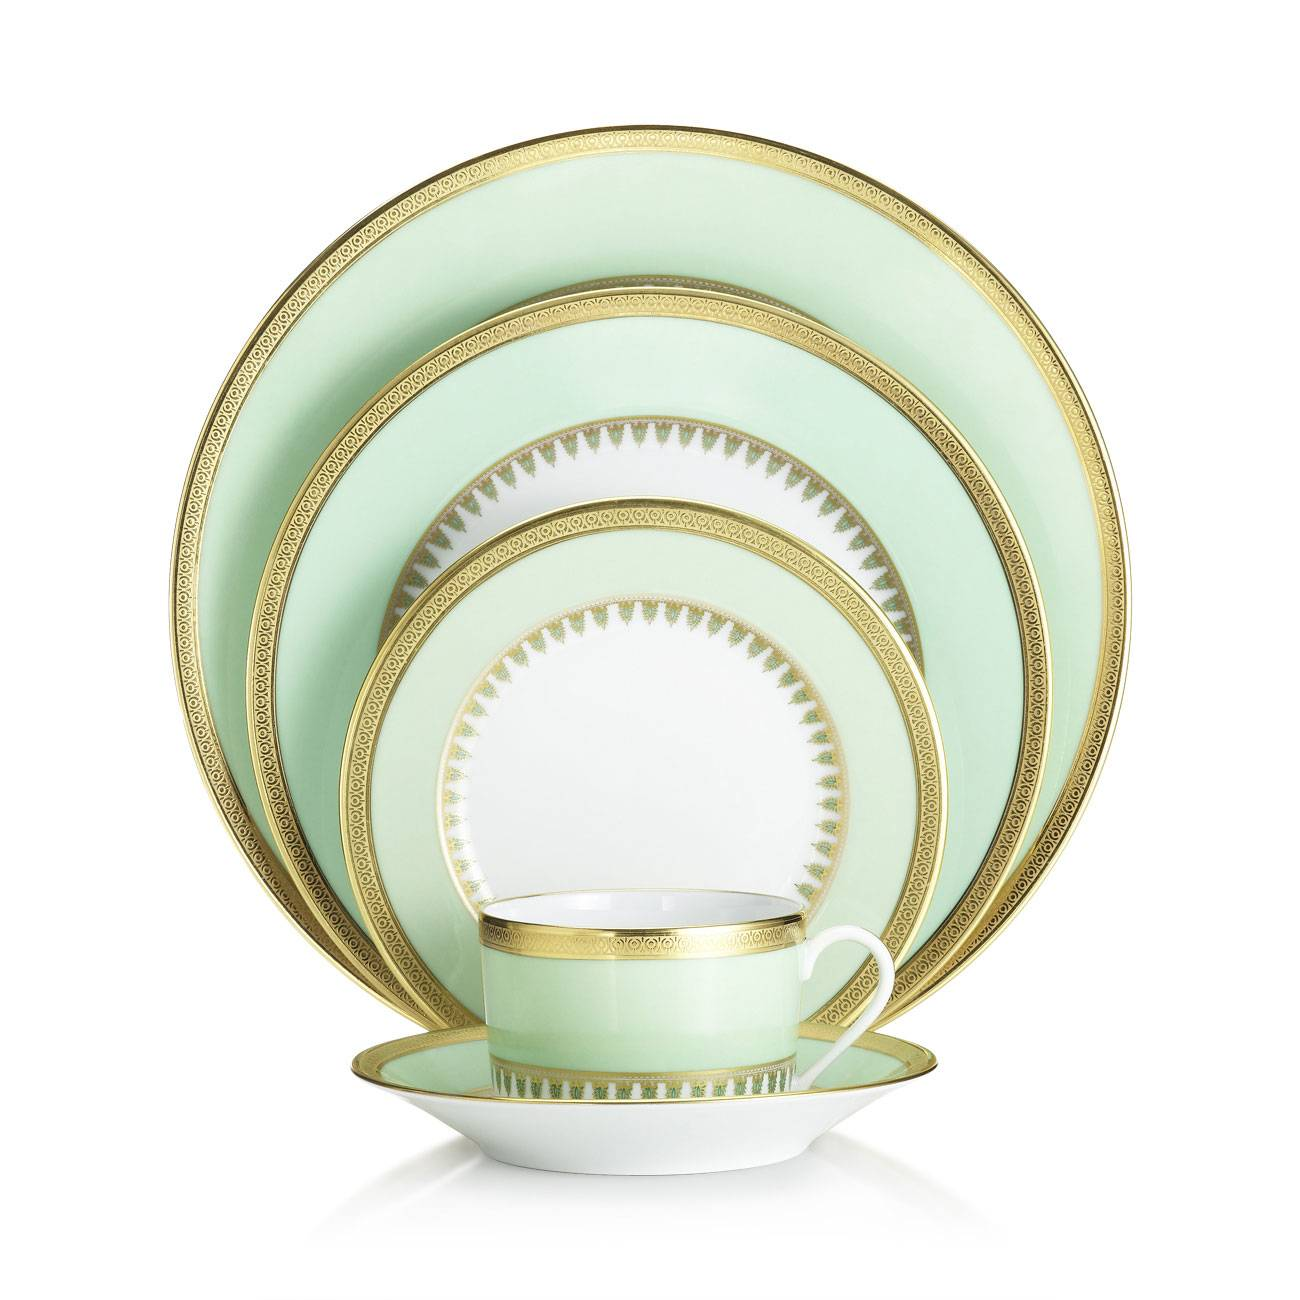 Haviland Oasis Collection